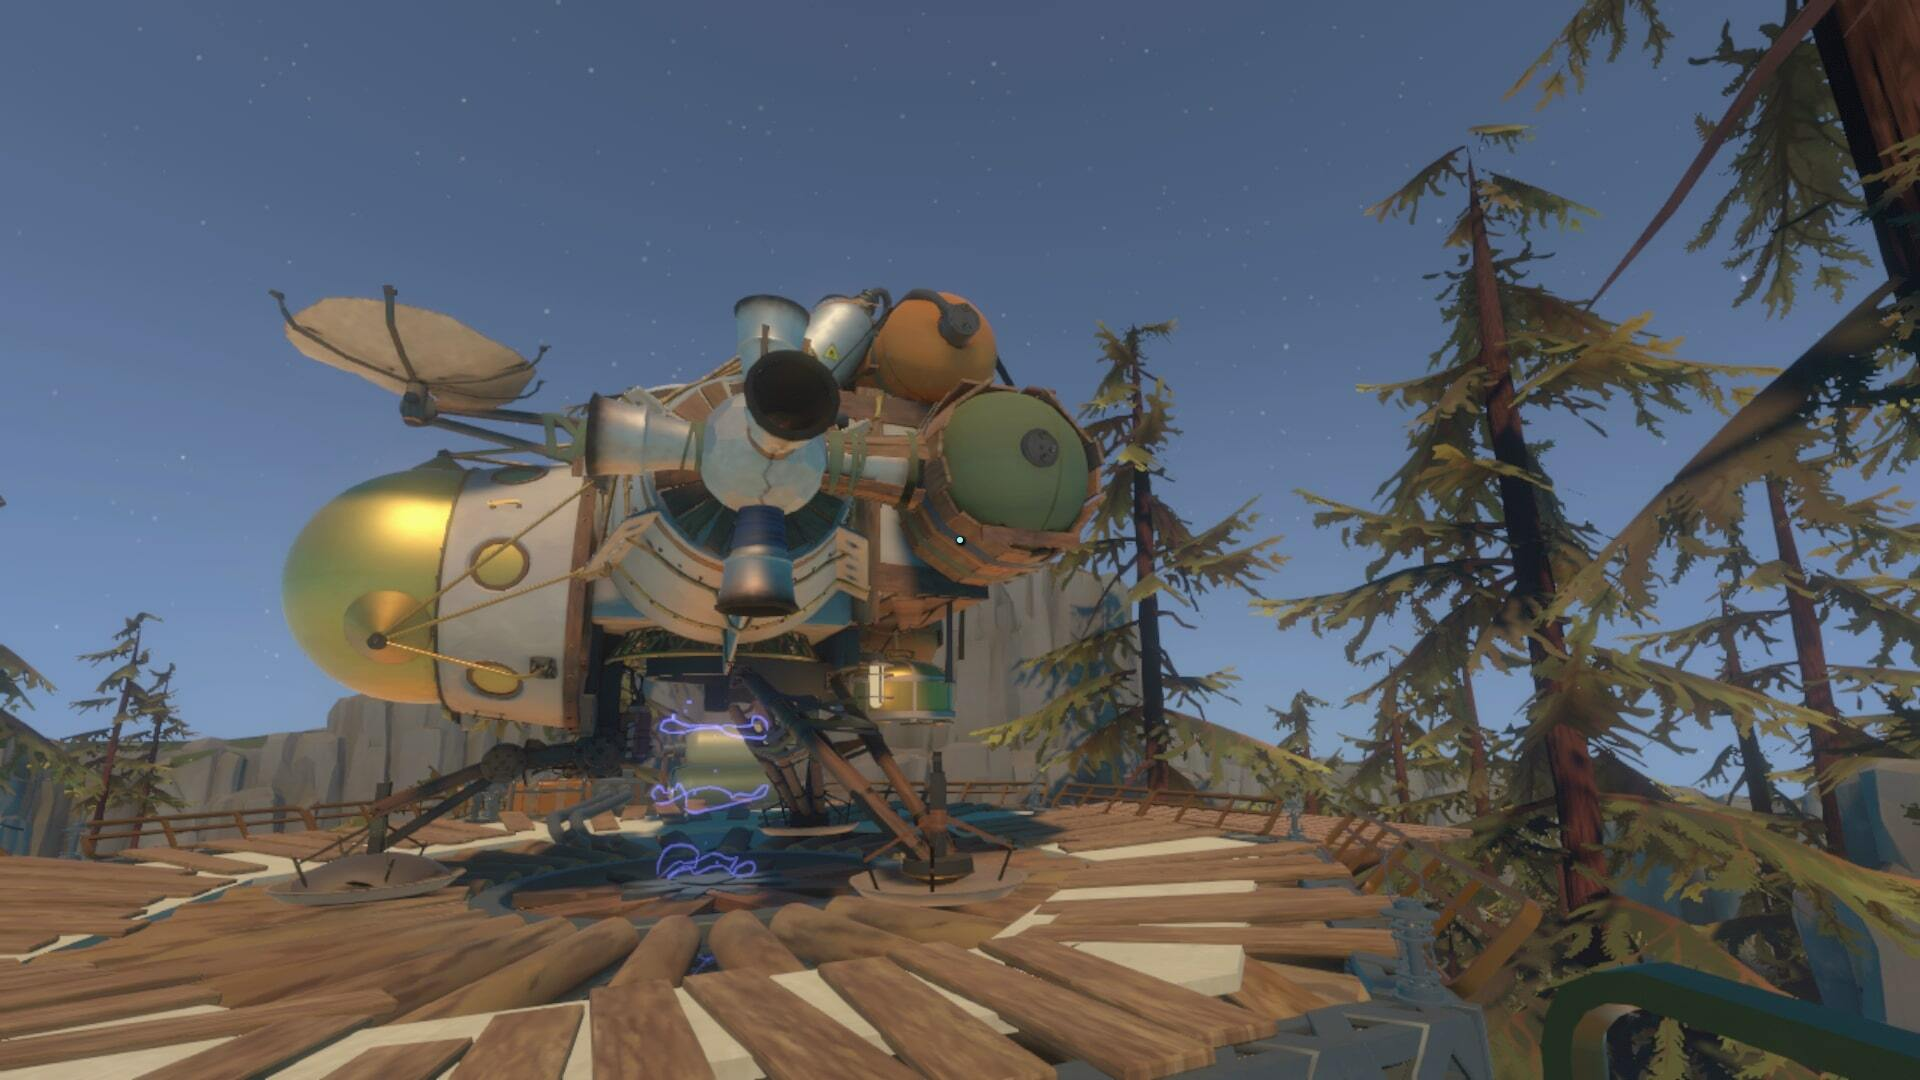 Is Outer Wilds Coming to PS4?